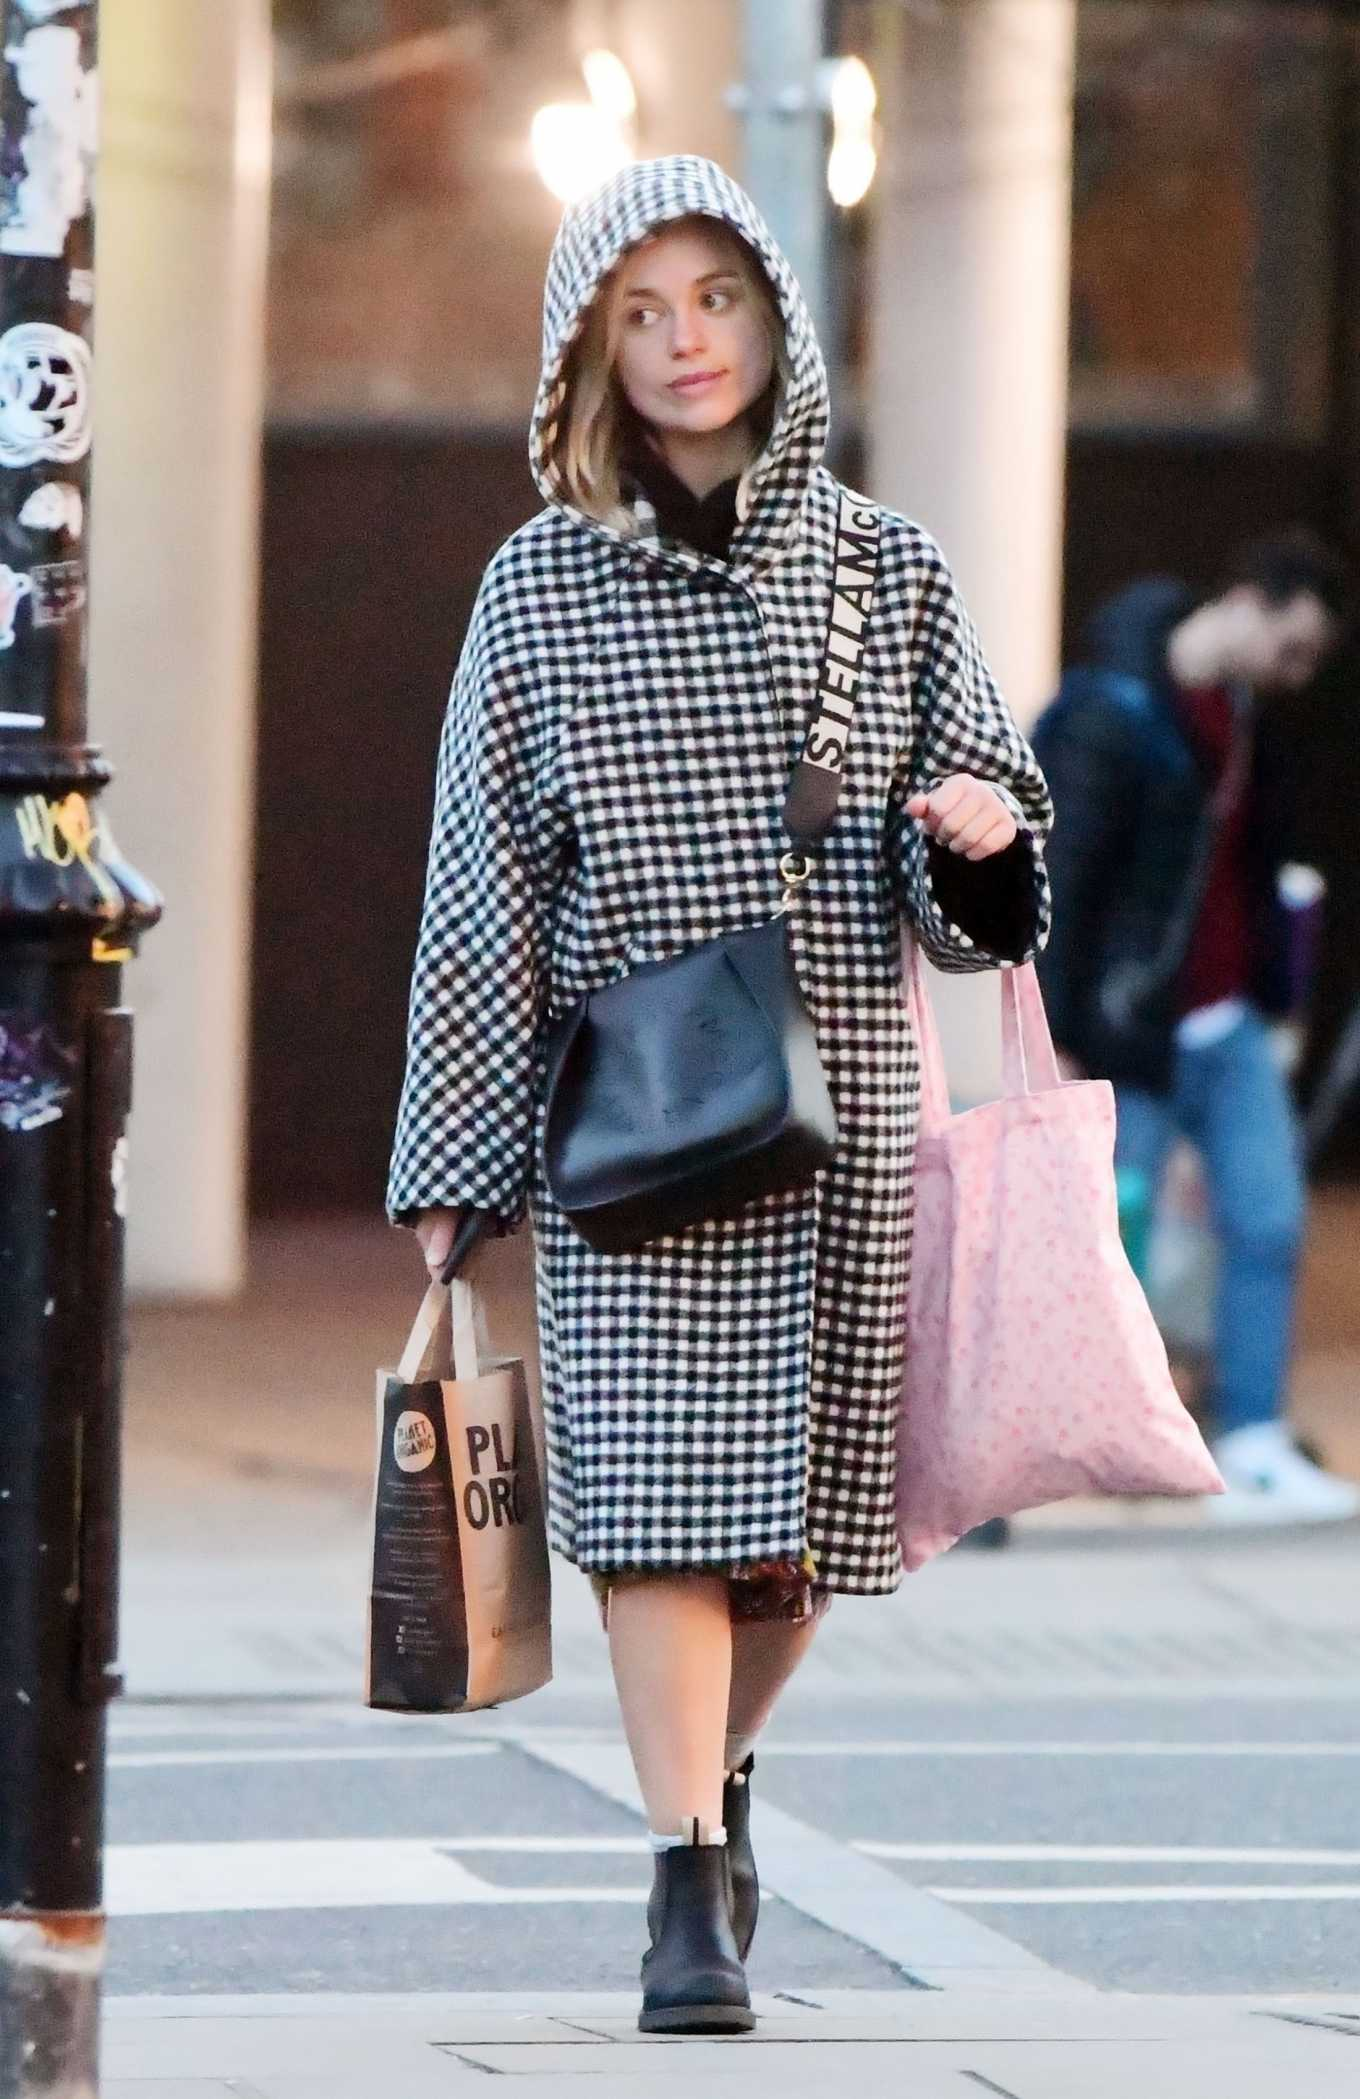 Amelia Windsor 2020 : Amelia Windsor – Looks stylis while out in the trendy area of Notting Hill-39